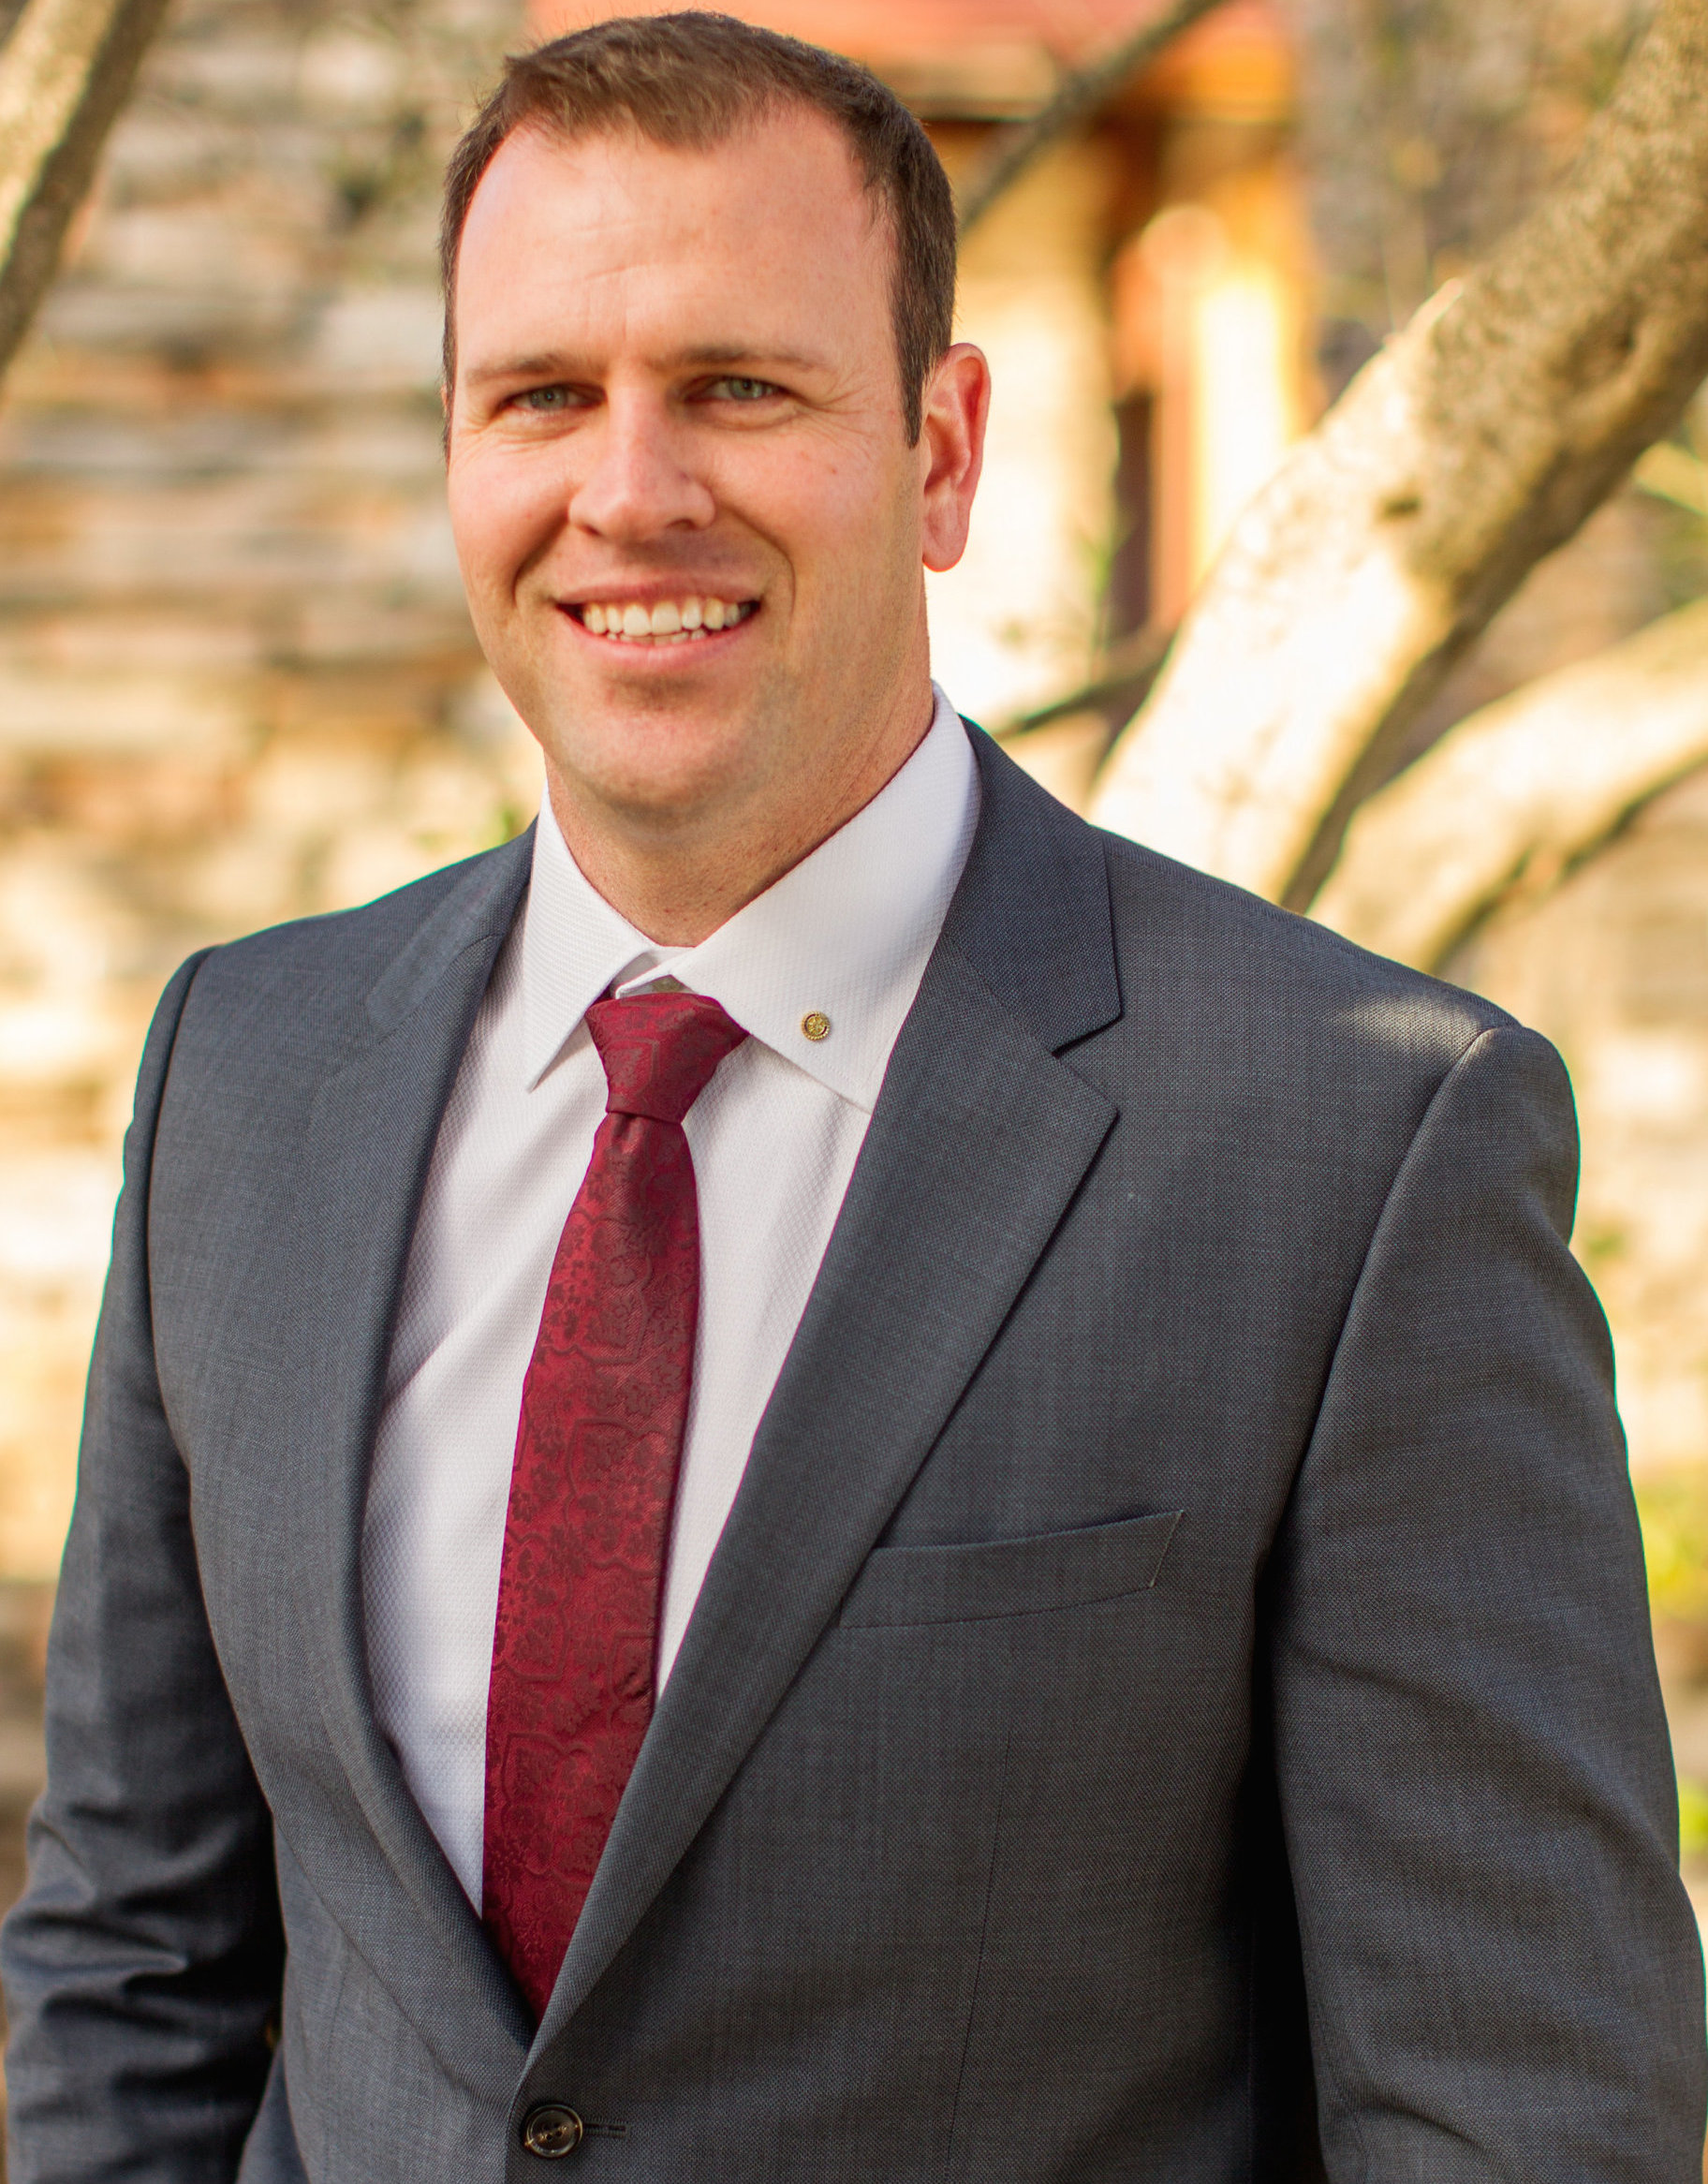 Ryan Olson, financial advisor Atascadero CA